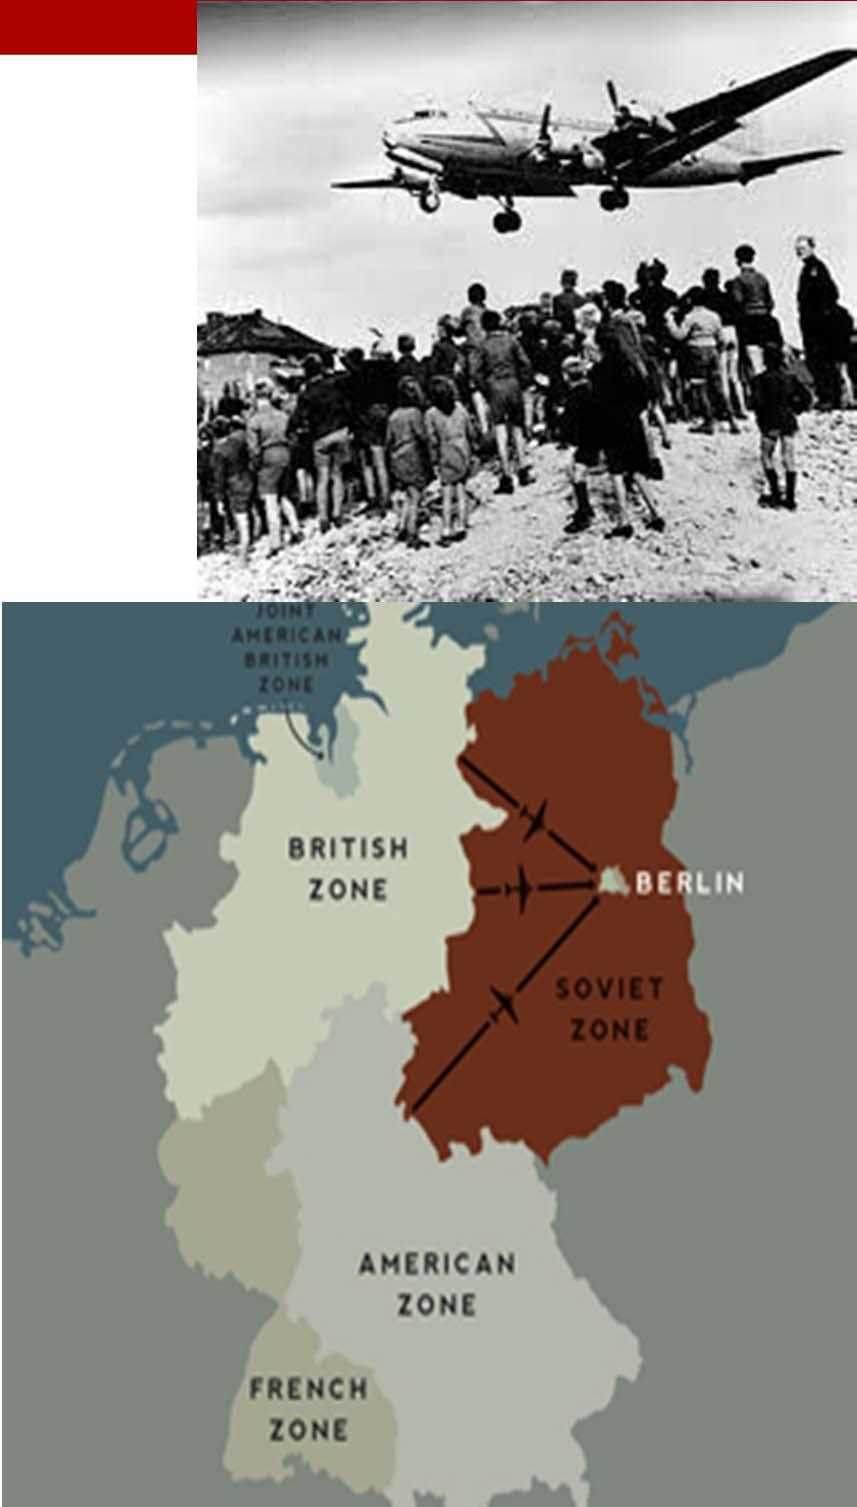 Berlin Blockade and Airlift (1948) Soviets blocked all routes into West Berlin (cut off food/coal; caused starvation and poverty) British